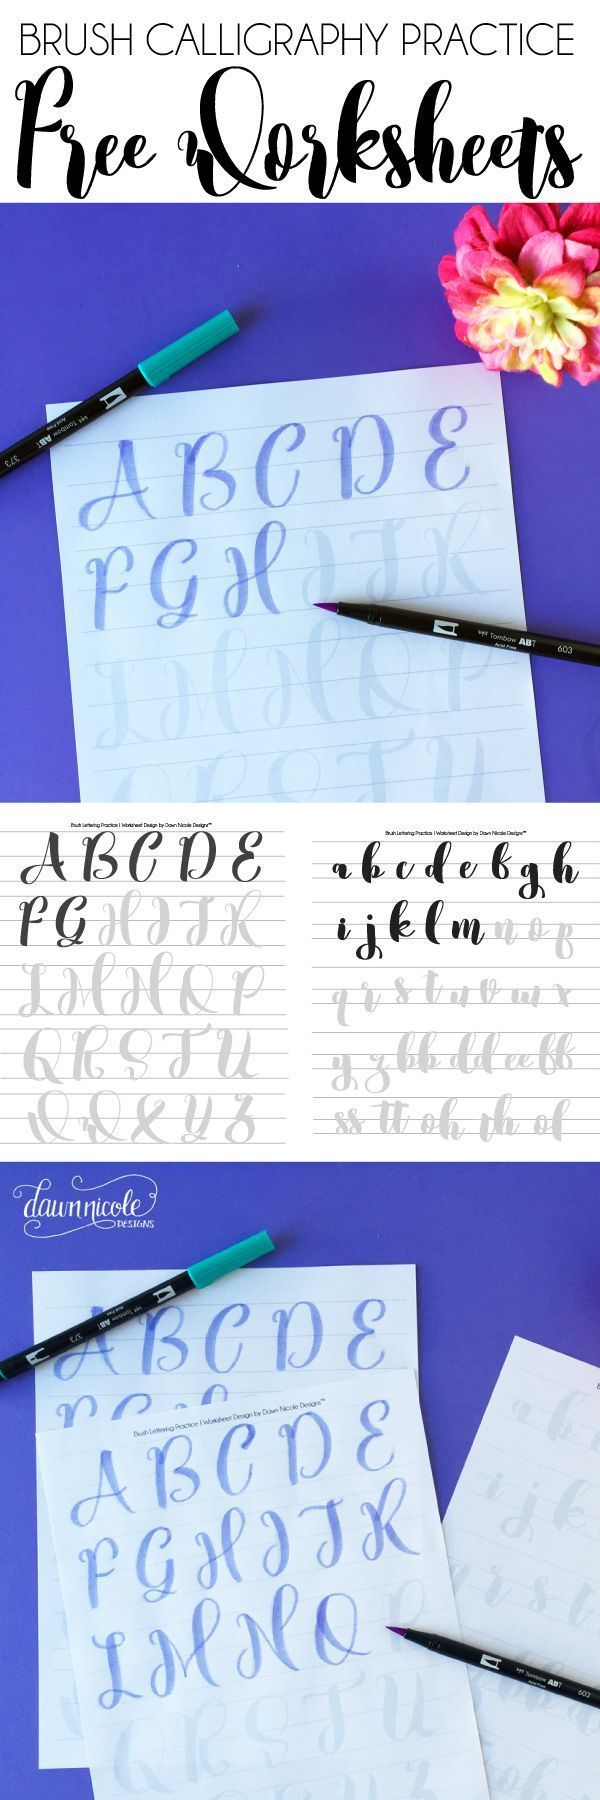 Free Brush Calligraphy Practice Worksheets